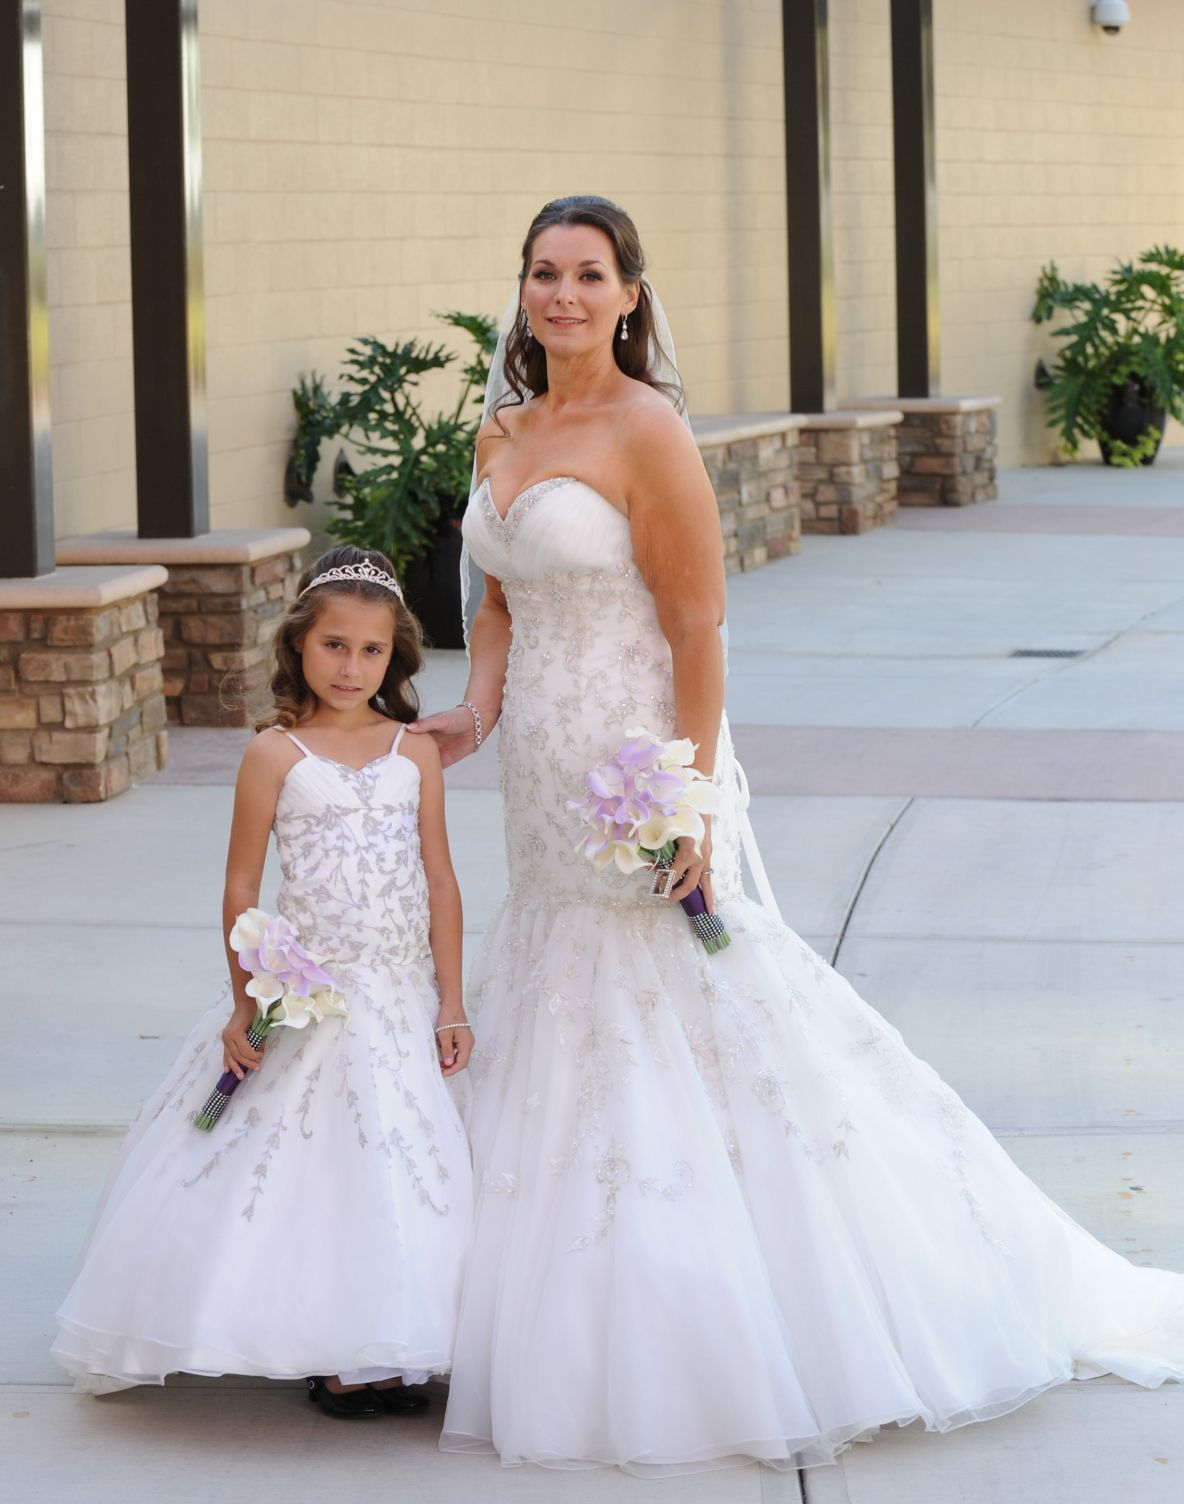 Awesome Matching Wedding And Flower Dresses Check More At Http Svesty